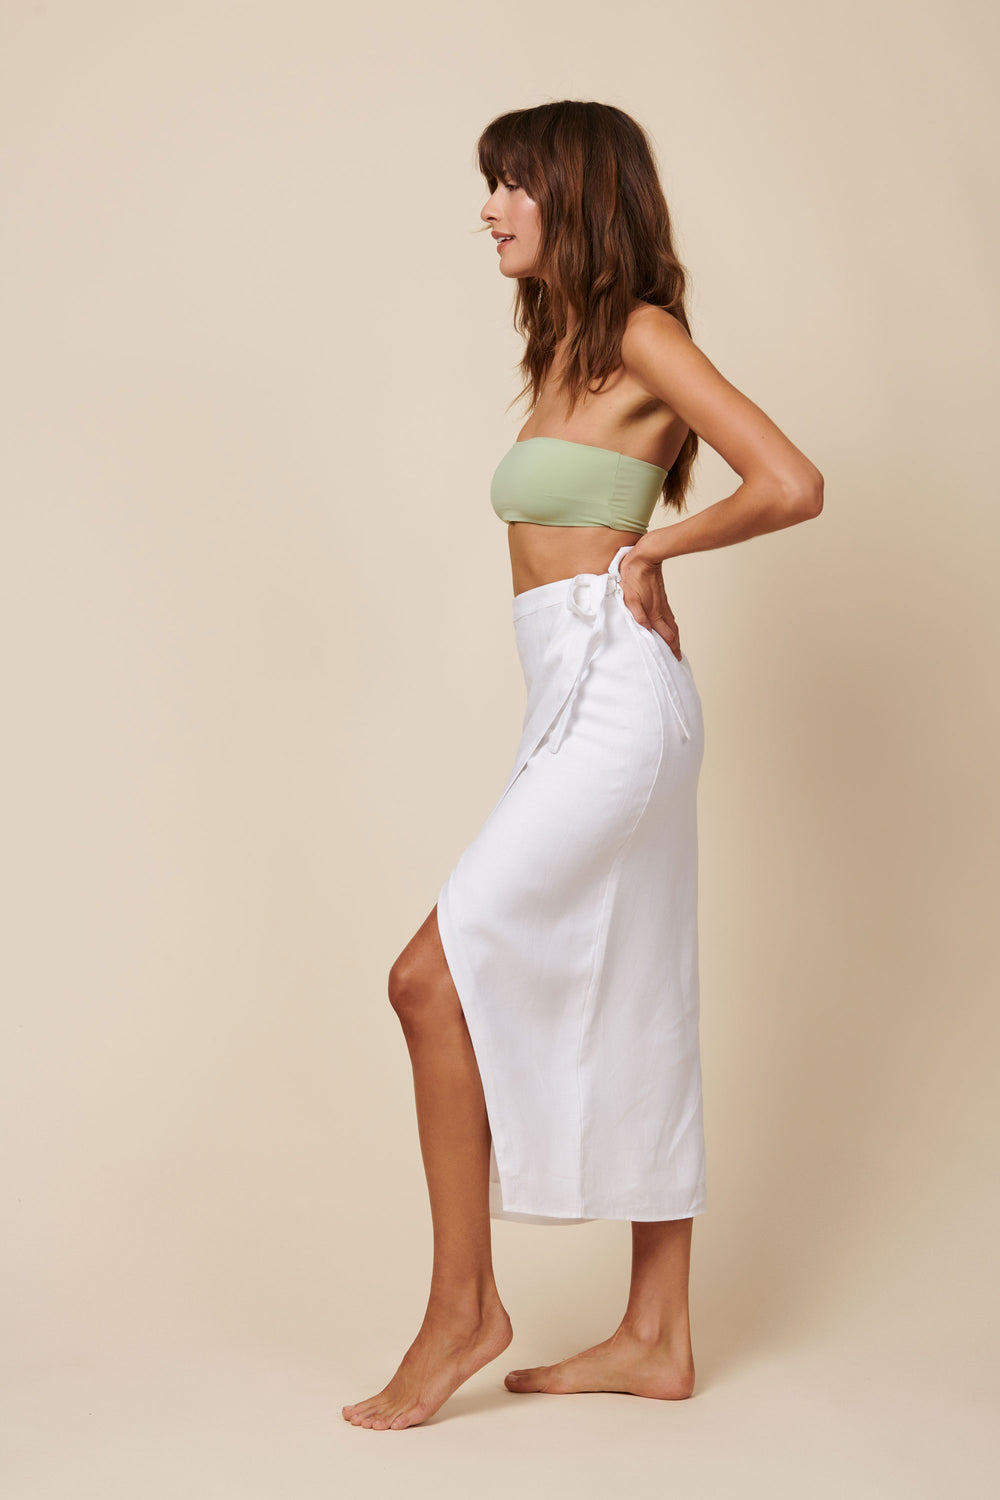 Valentina Skirt in White Linen - Whimsy & Row